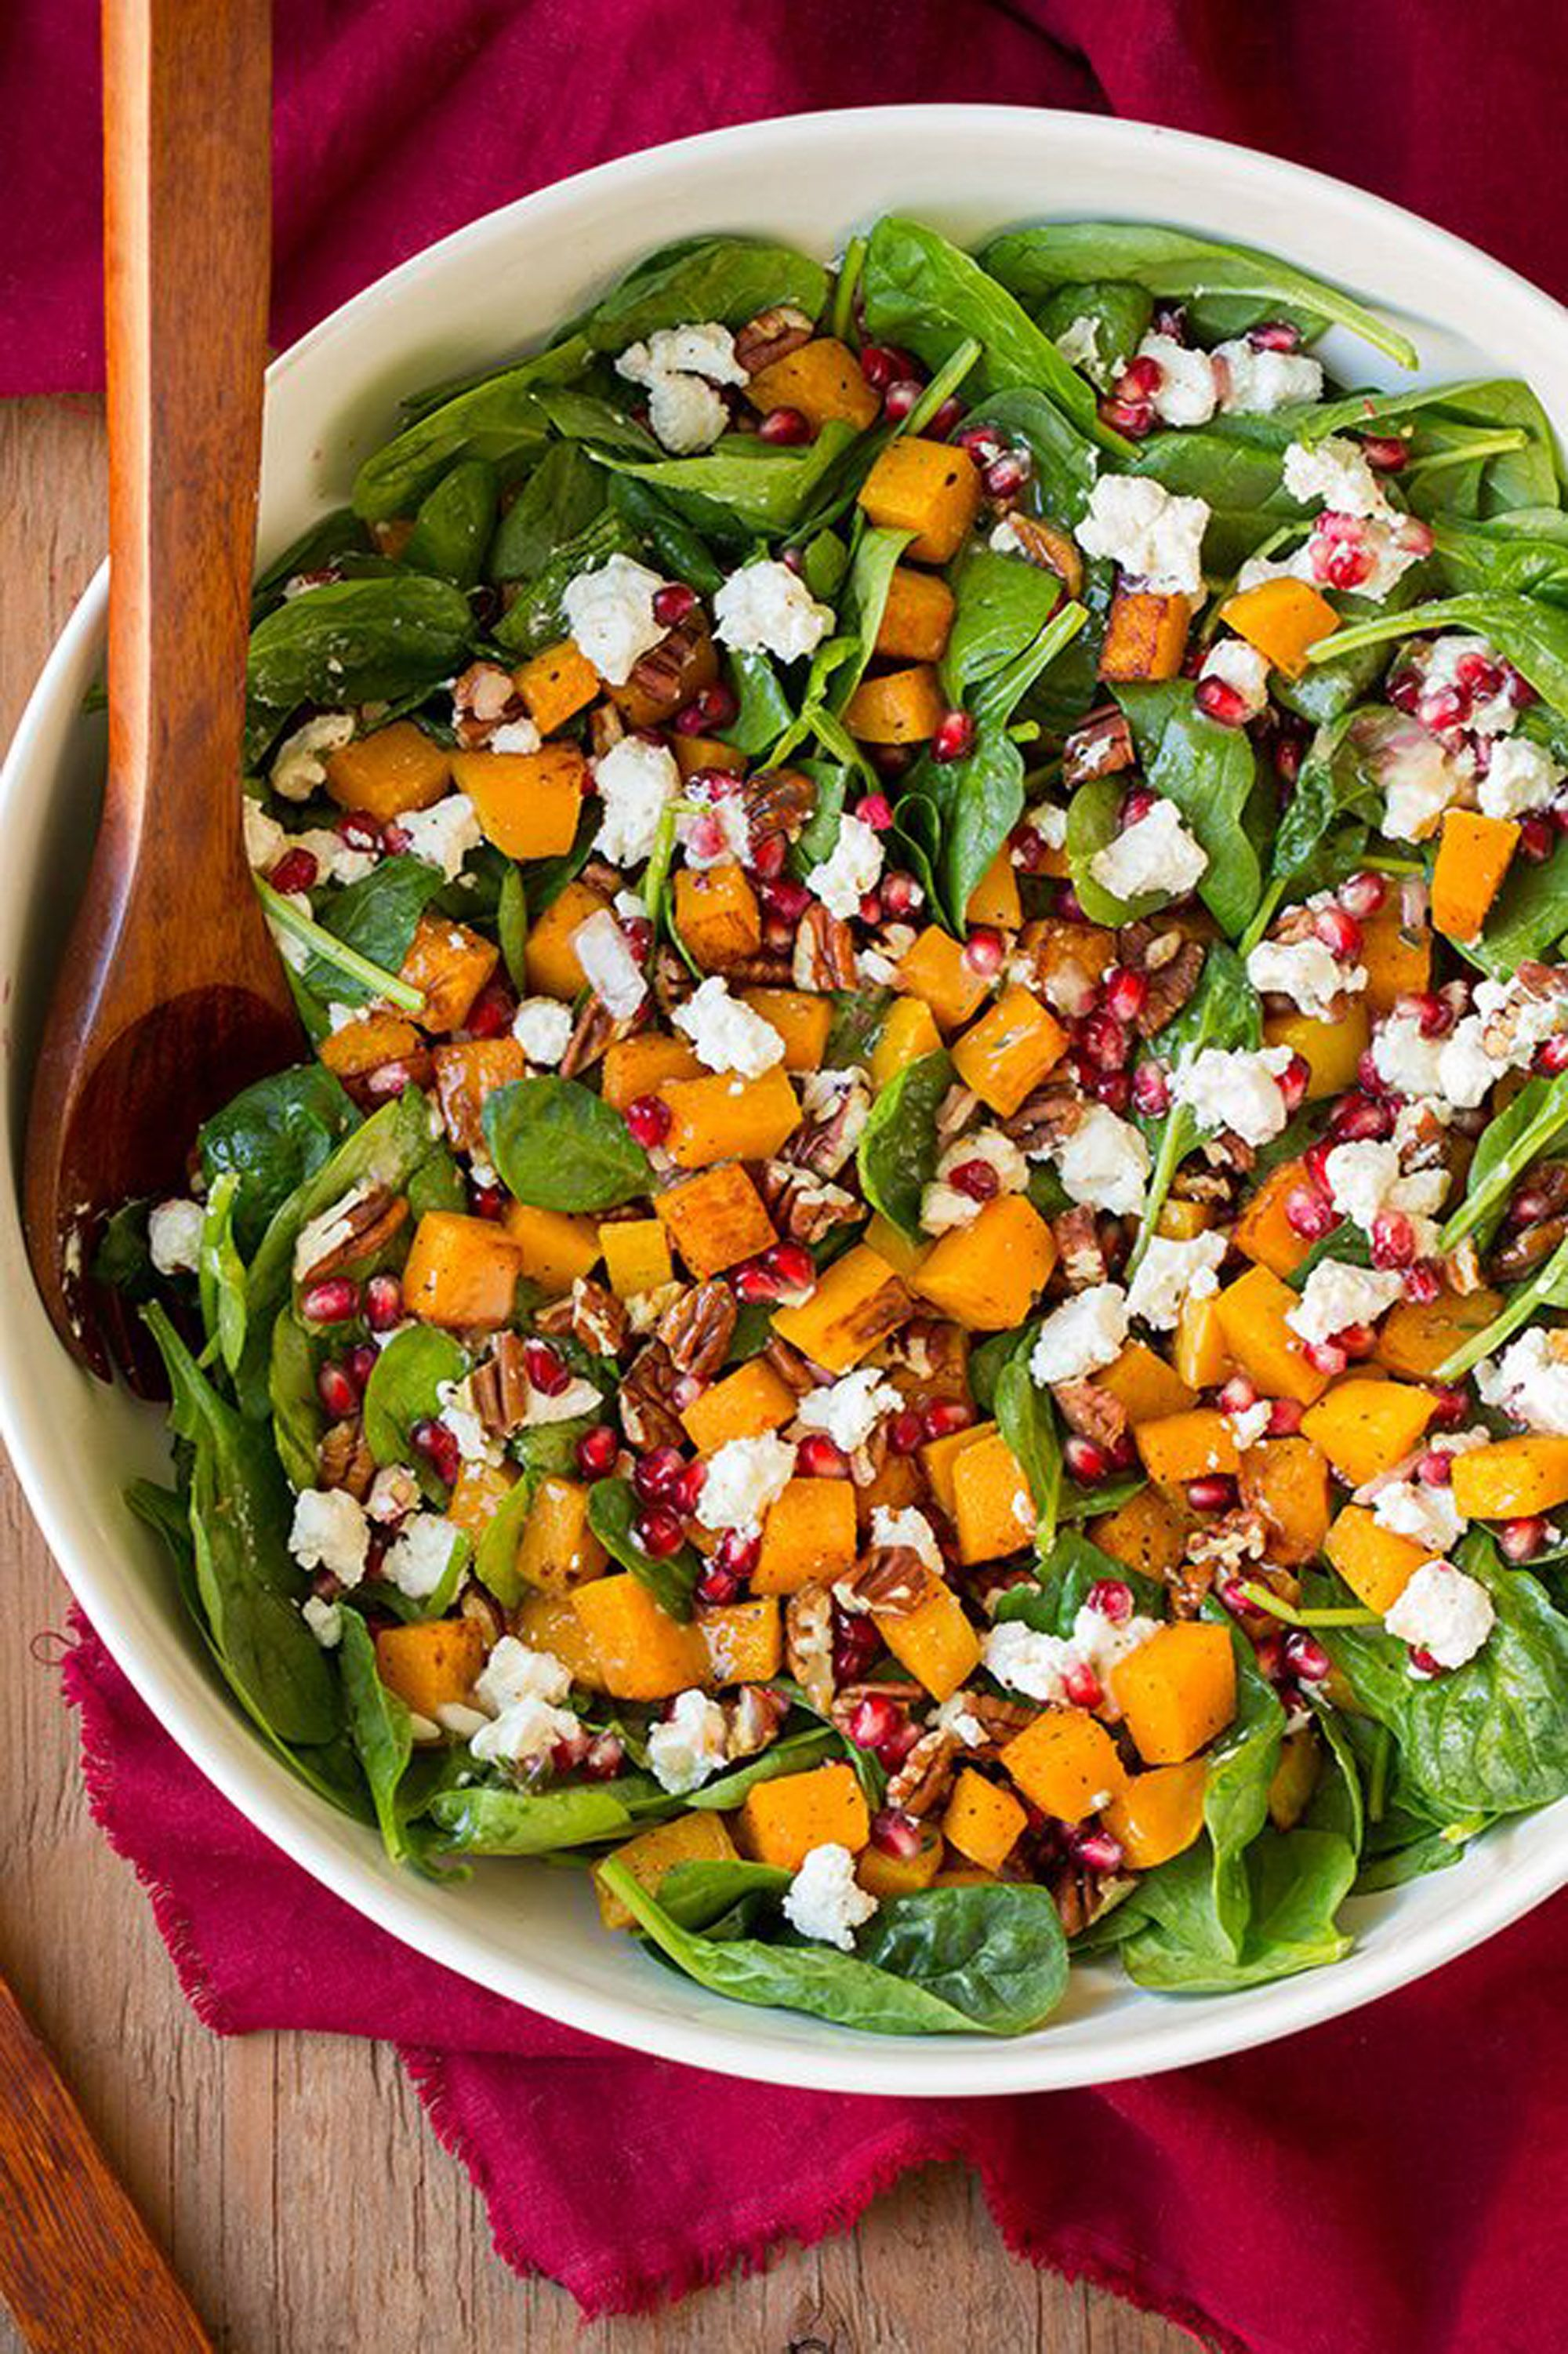 10 Best Fall Salad Recipes - Healthy Ideas for Autumn Salads